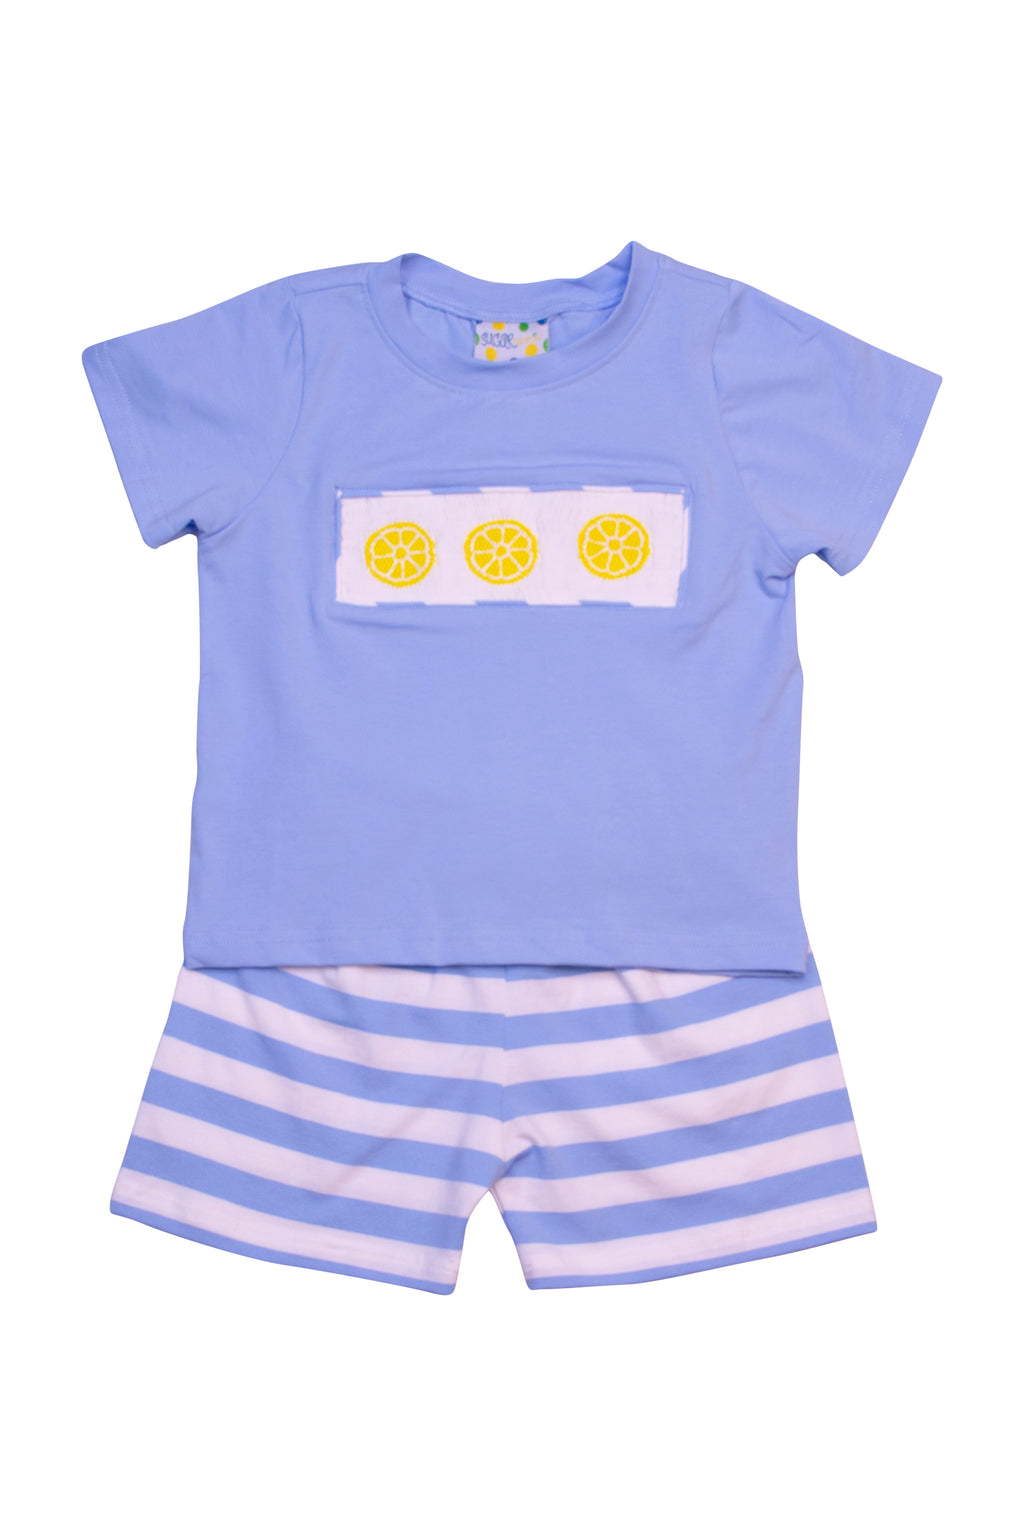 Boys Smocked Lemon Shorts Set